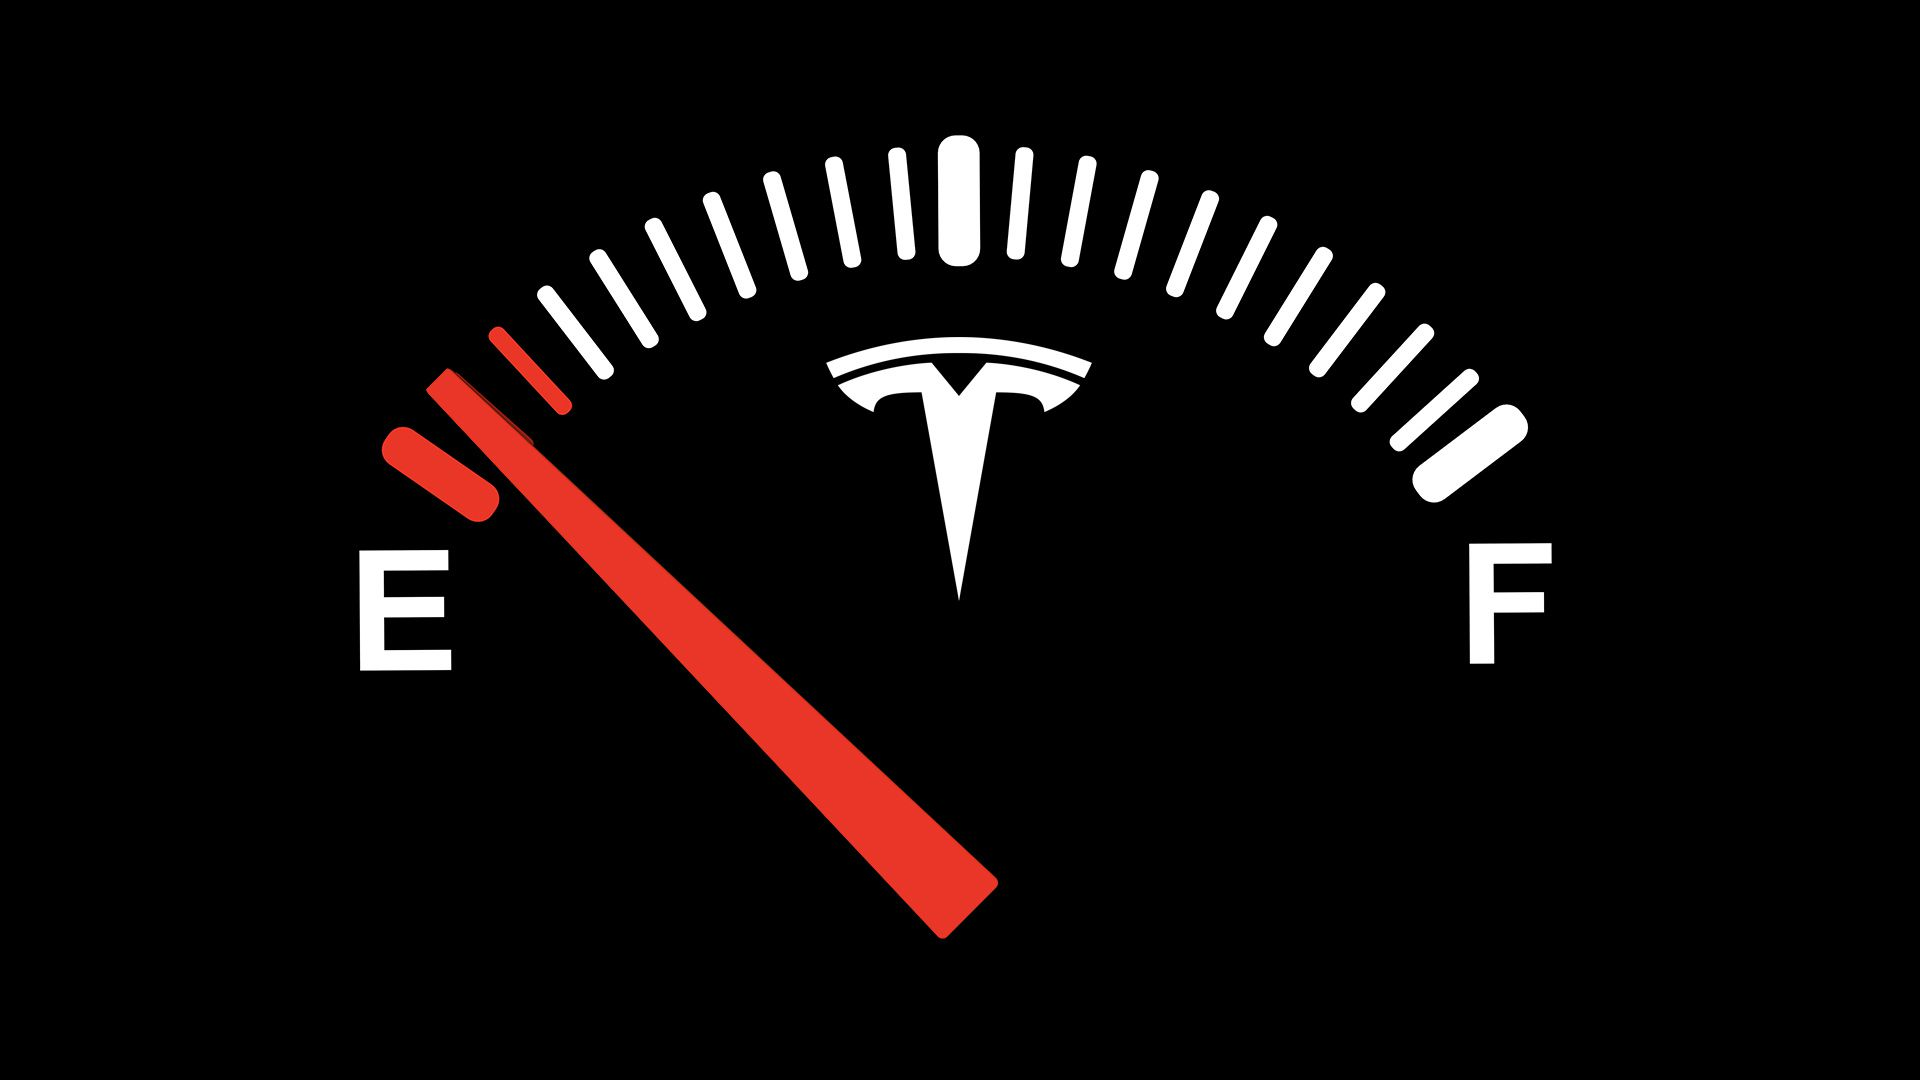 Illustration of Tesla gas tank on empty